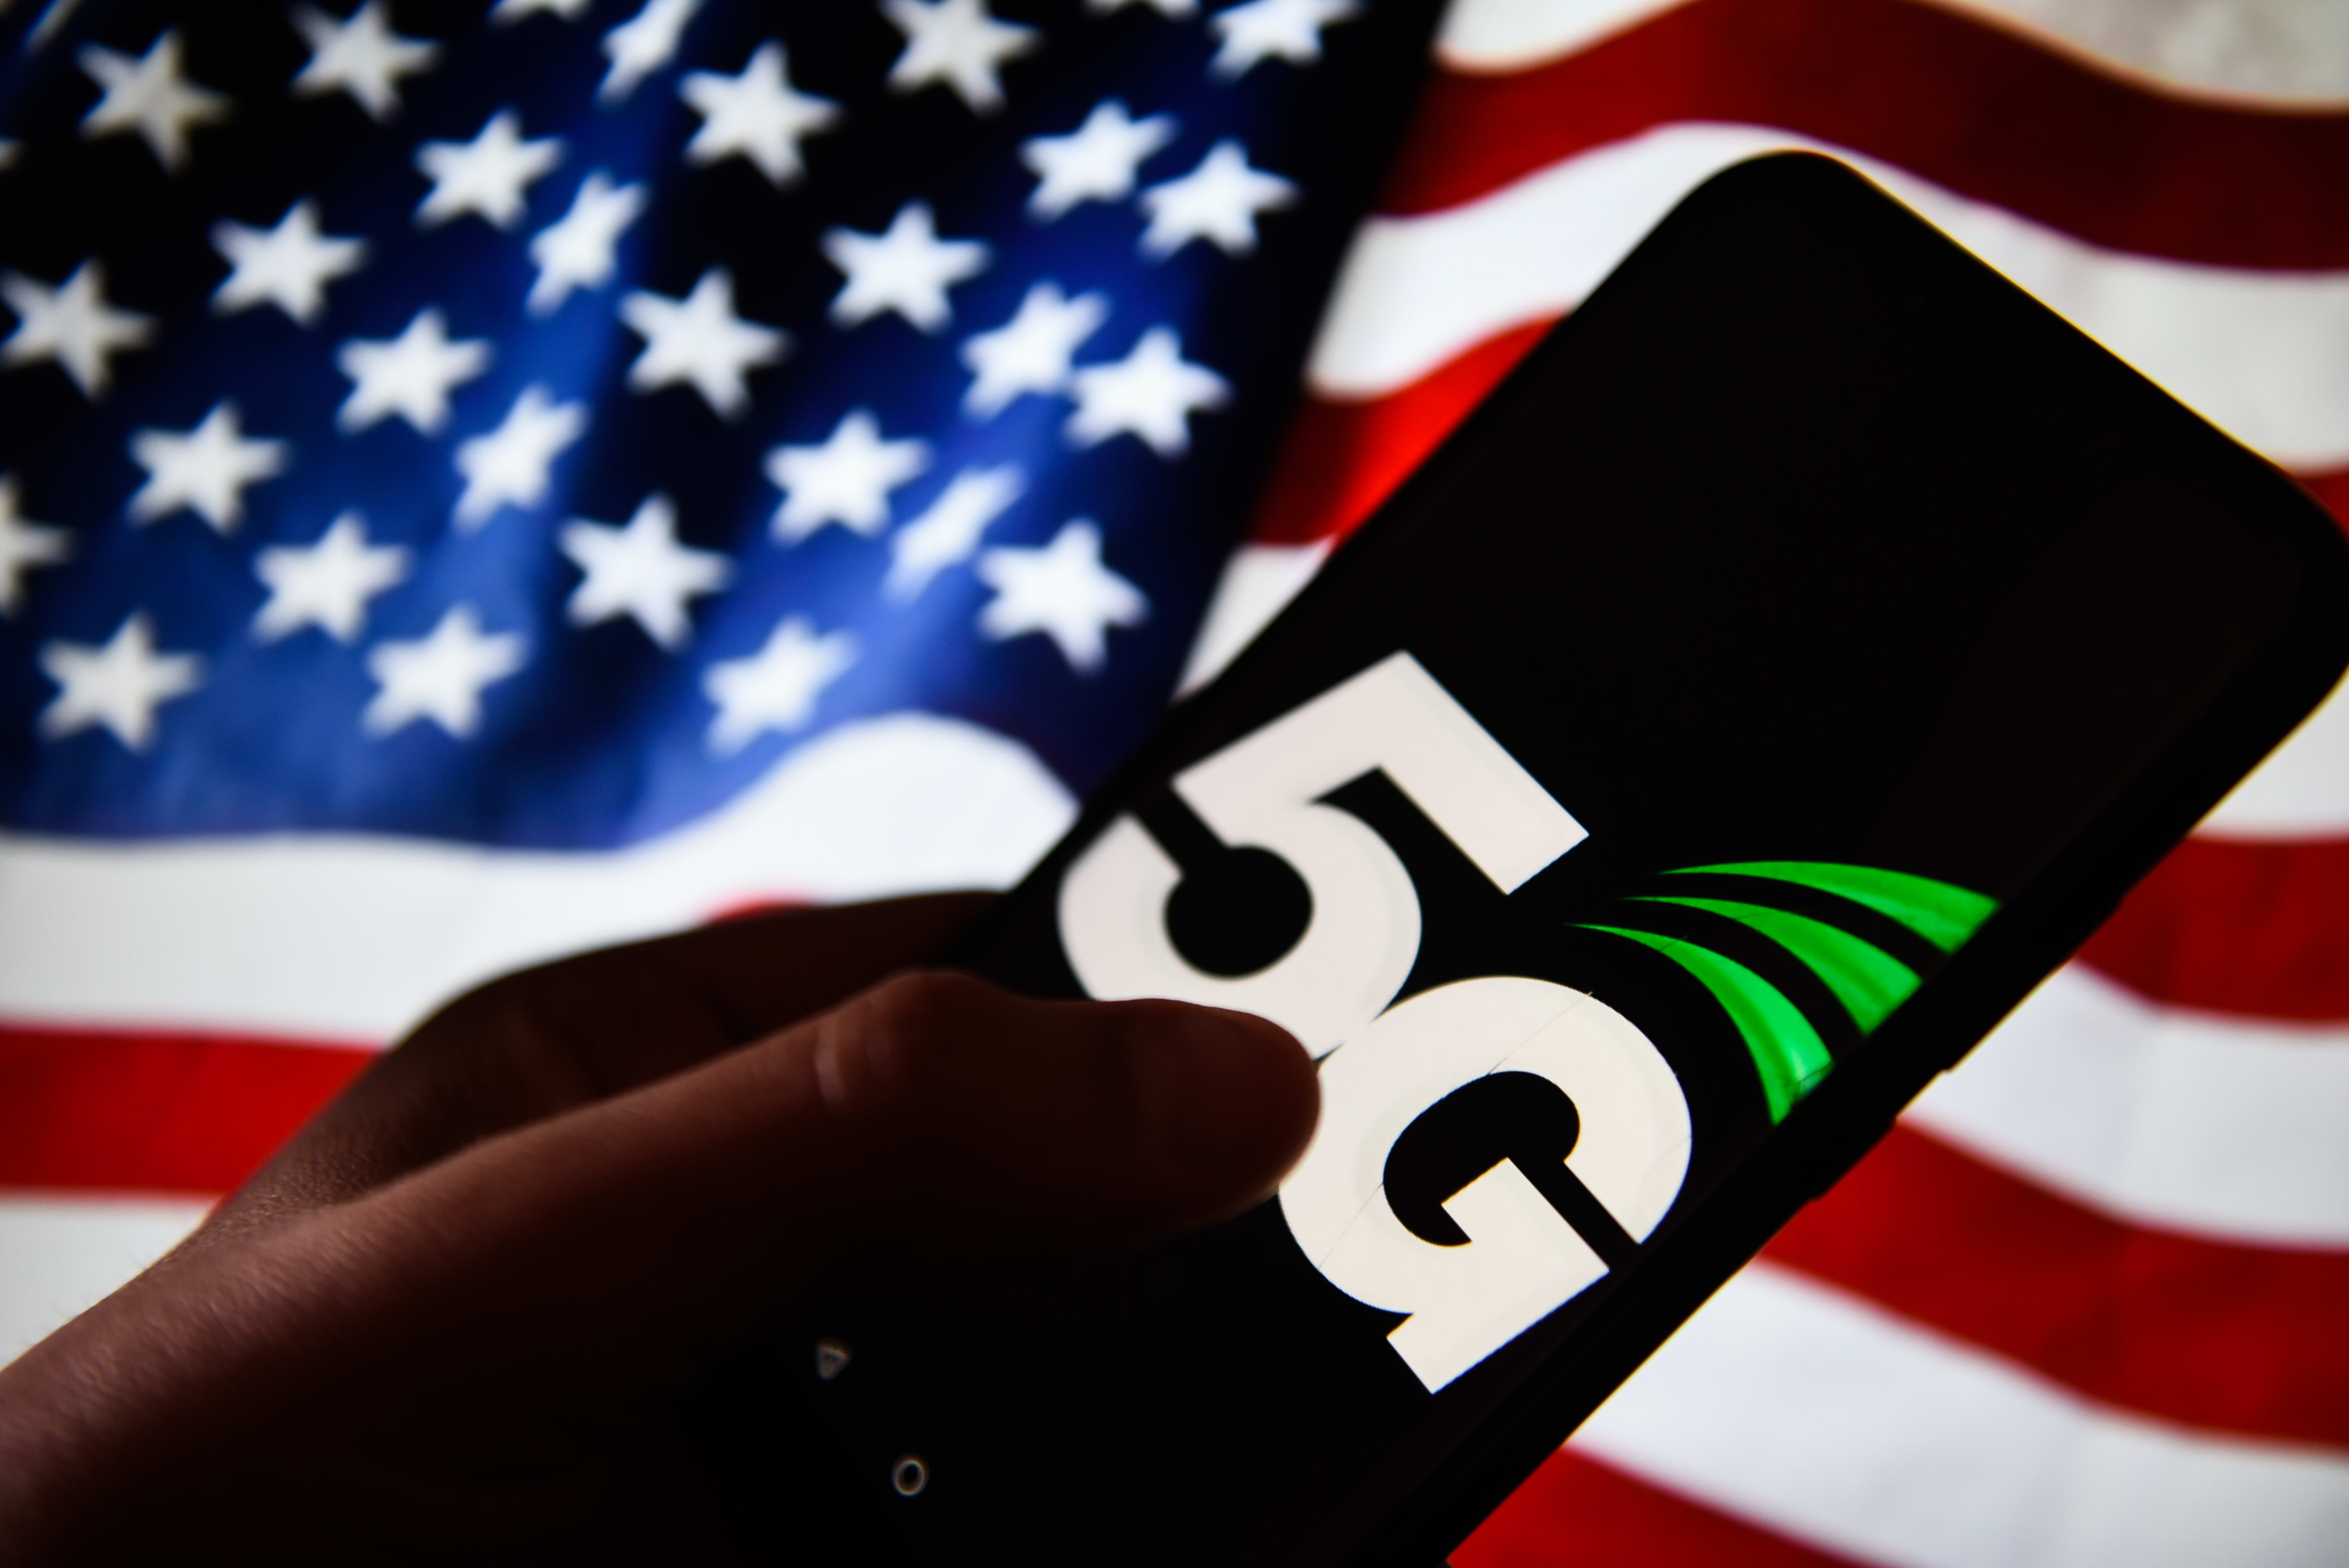 5G Bill Signed Into Law While Everyone Is Distracted By Coronavirus